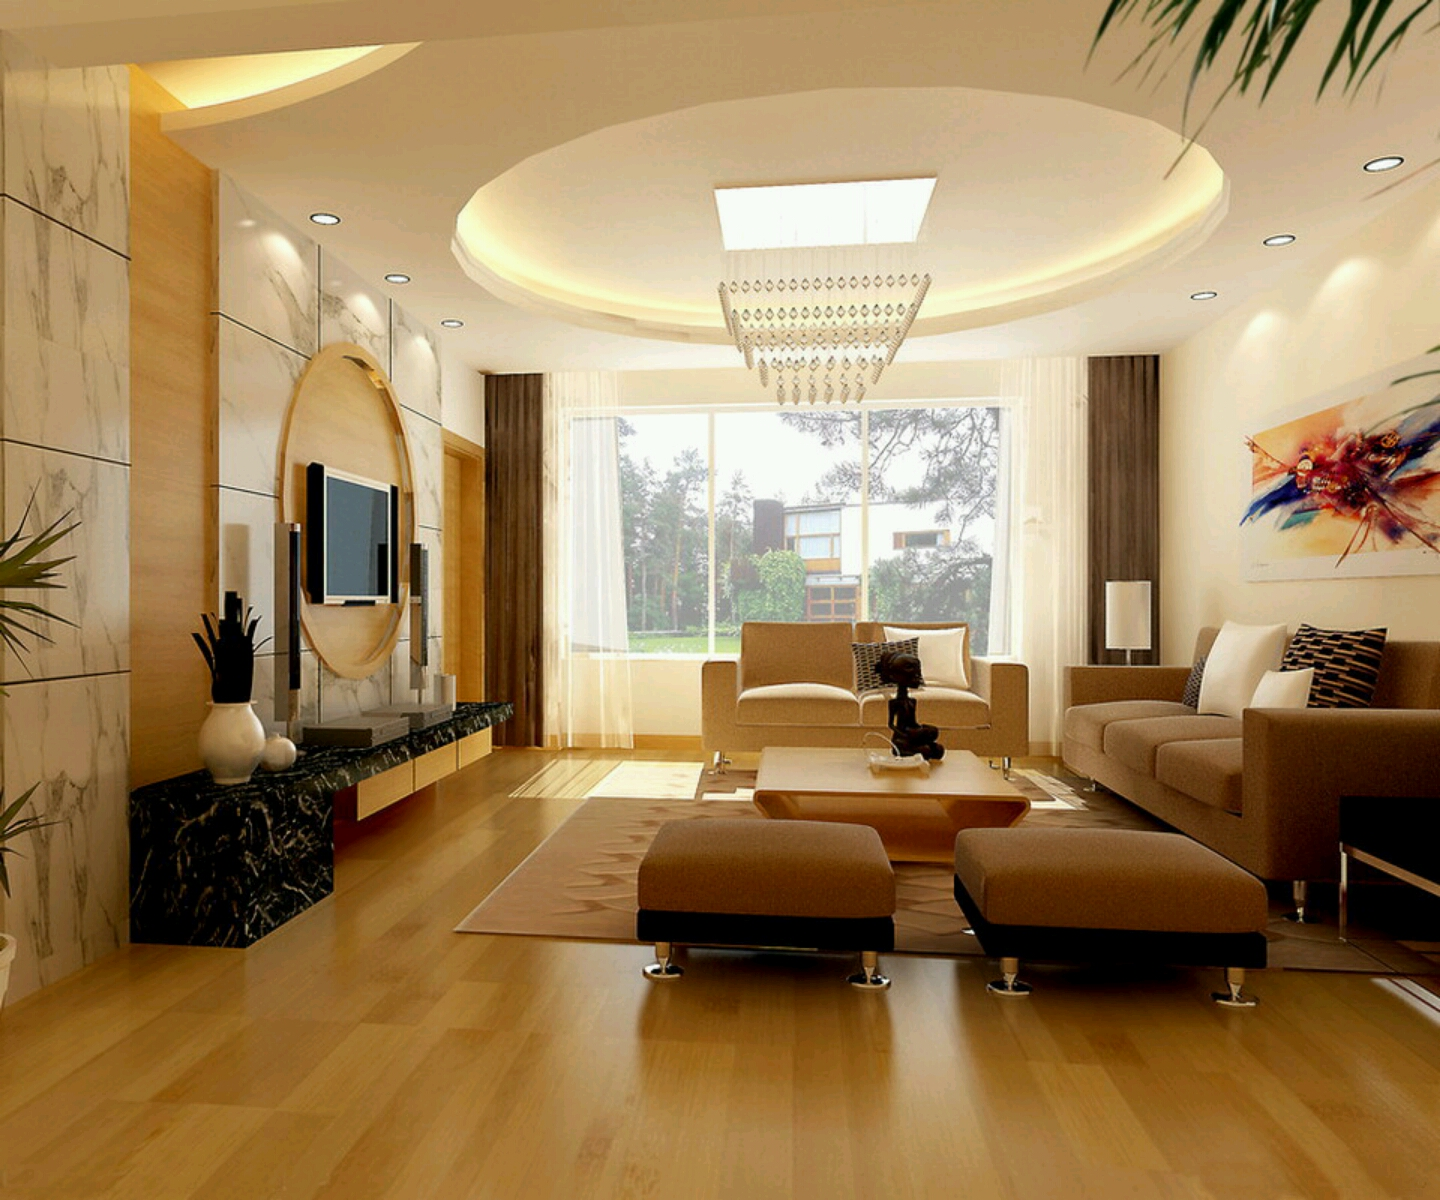 25 Bedroom Design Ideas For Your Home: 25 Stunning Ceiling Designs For Your Home